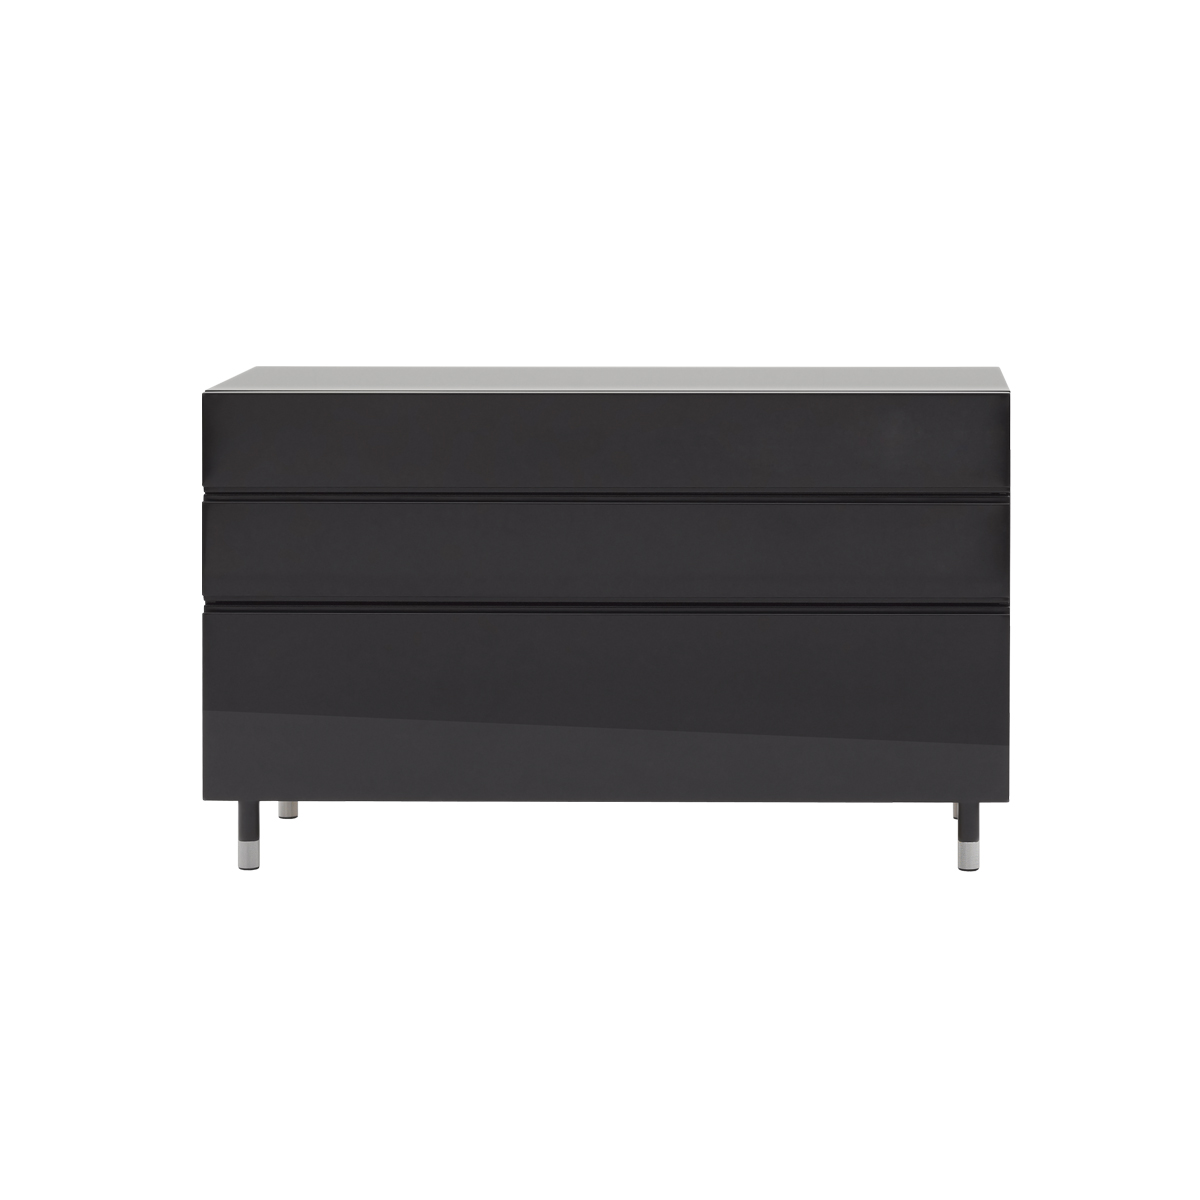 BLOCCO CHEST – Beyond Furniture